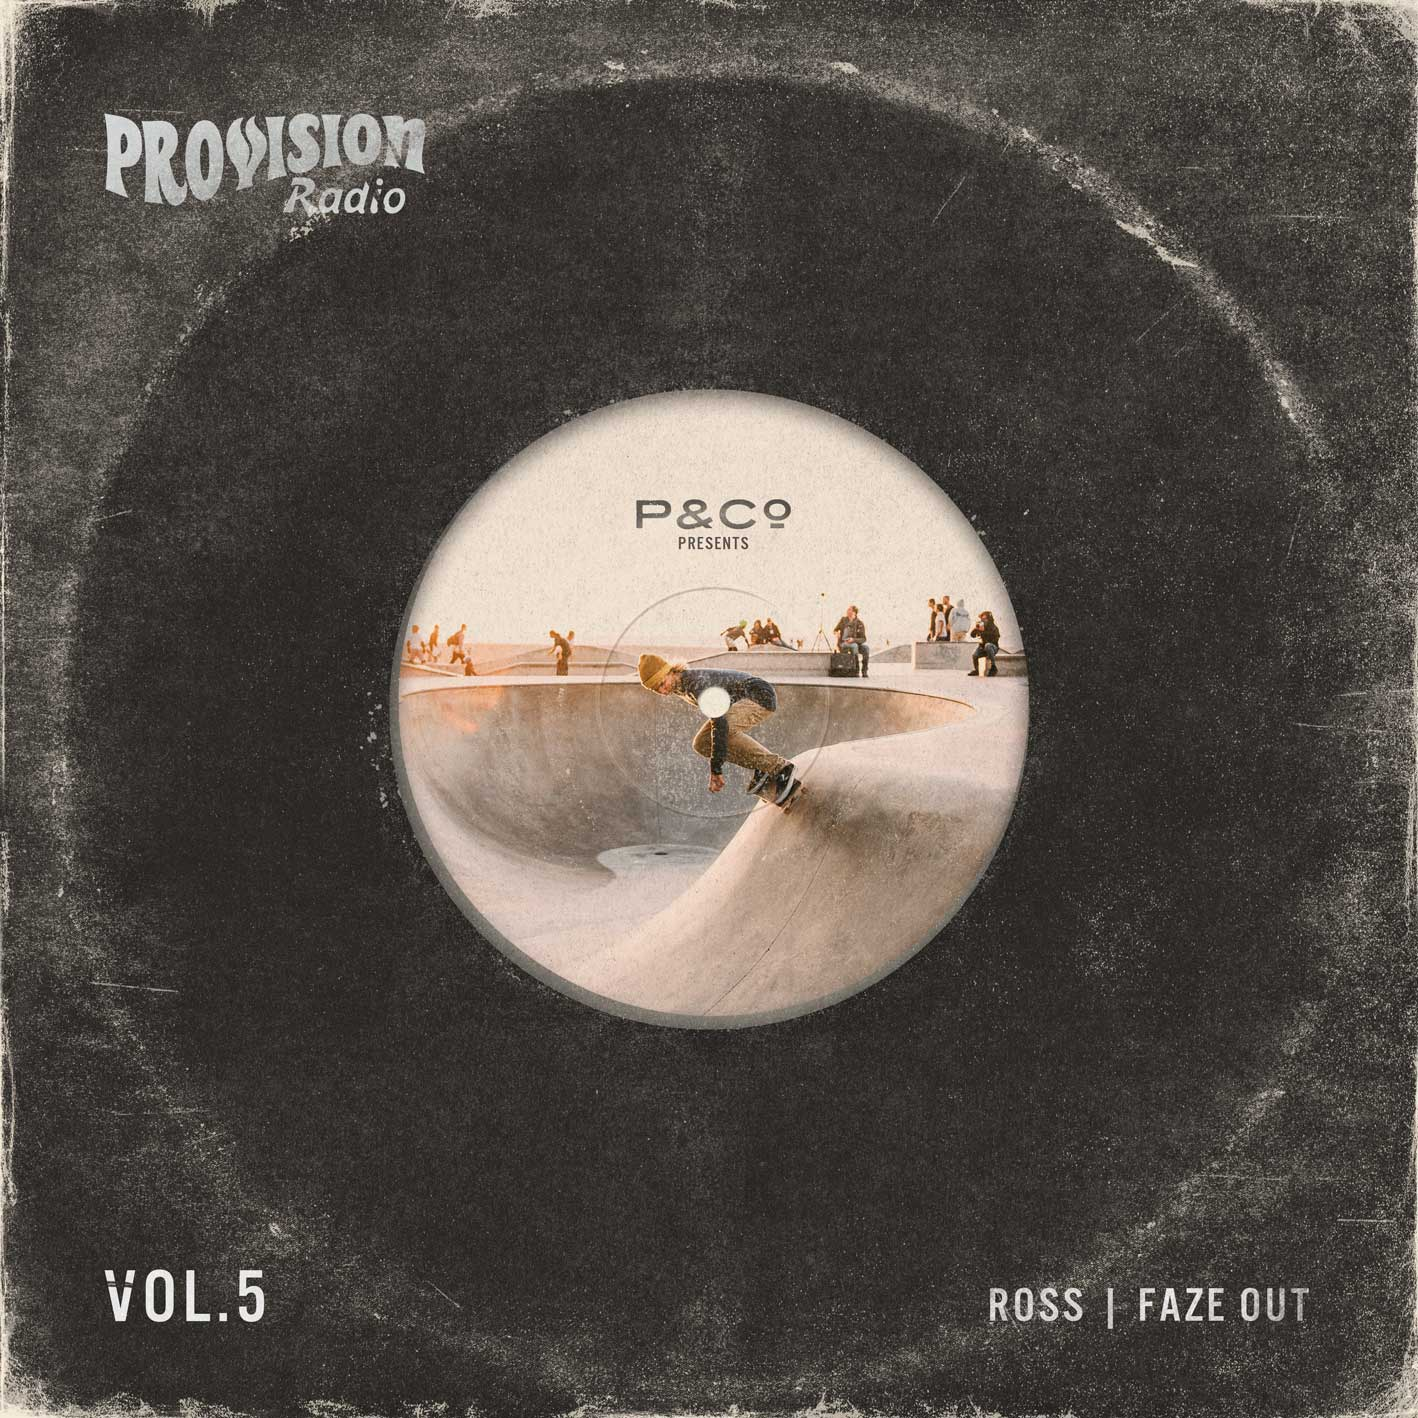 Provision & Co (P&Co) - Provision Radio Vol.5